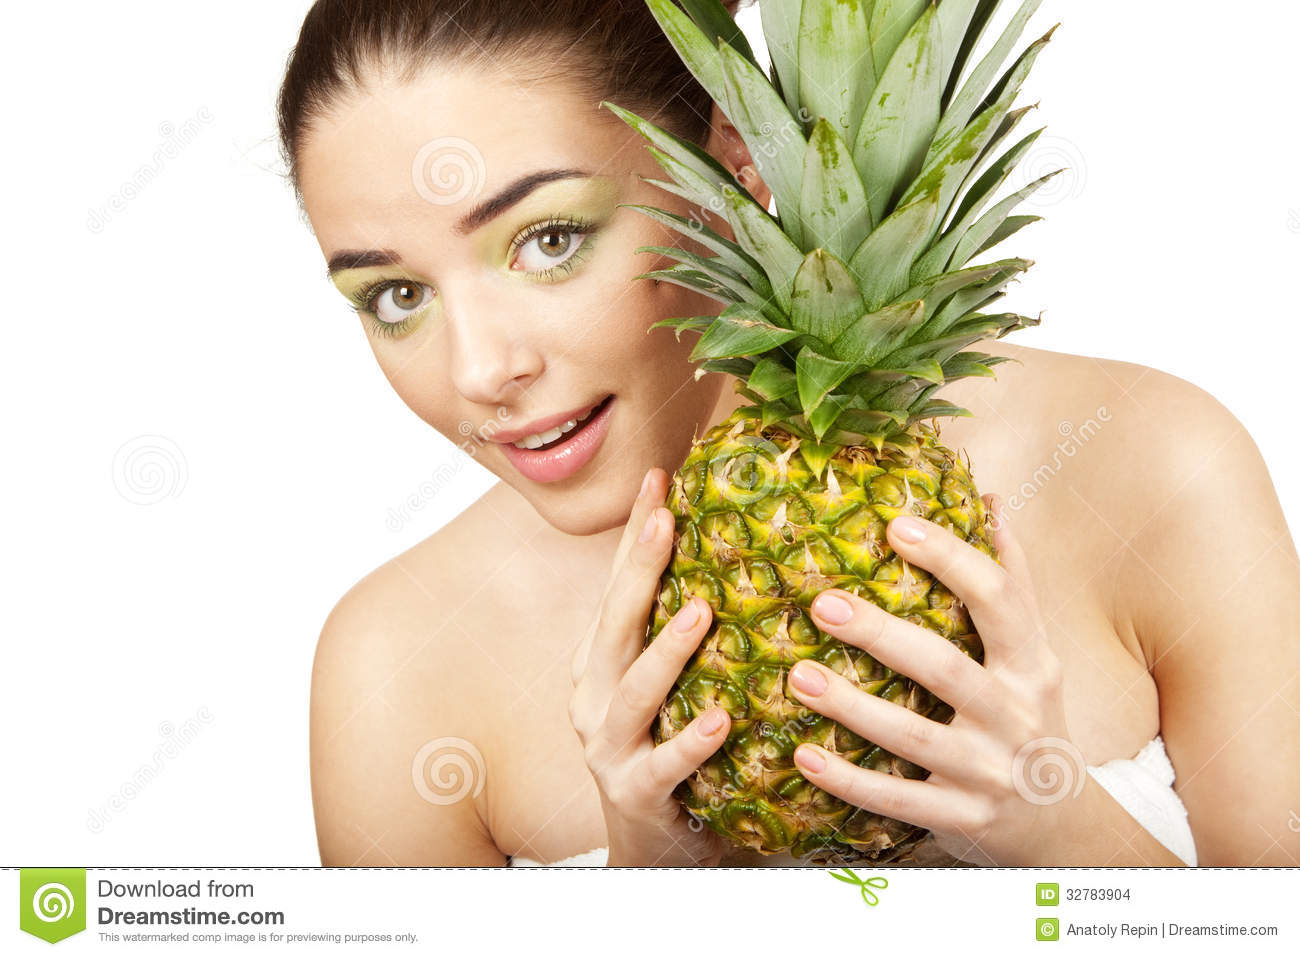 pine apple women Read moretop 10 health benefits of pineapple juice skip to content menu  did you know that one of the top benefits of pineapple juice for women affect their .